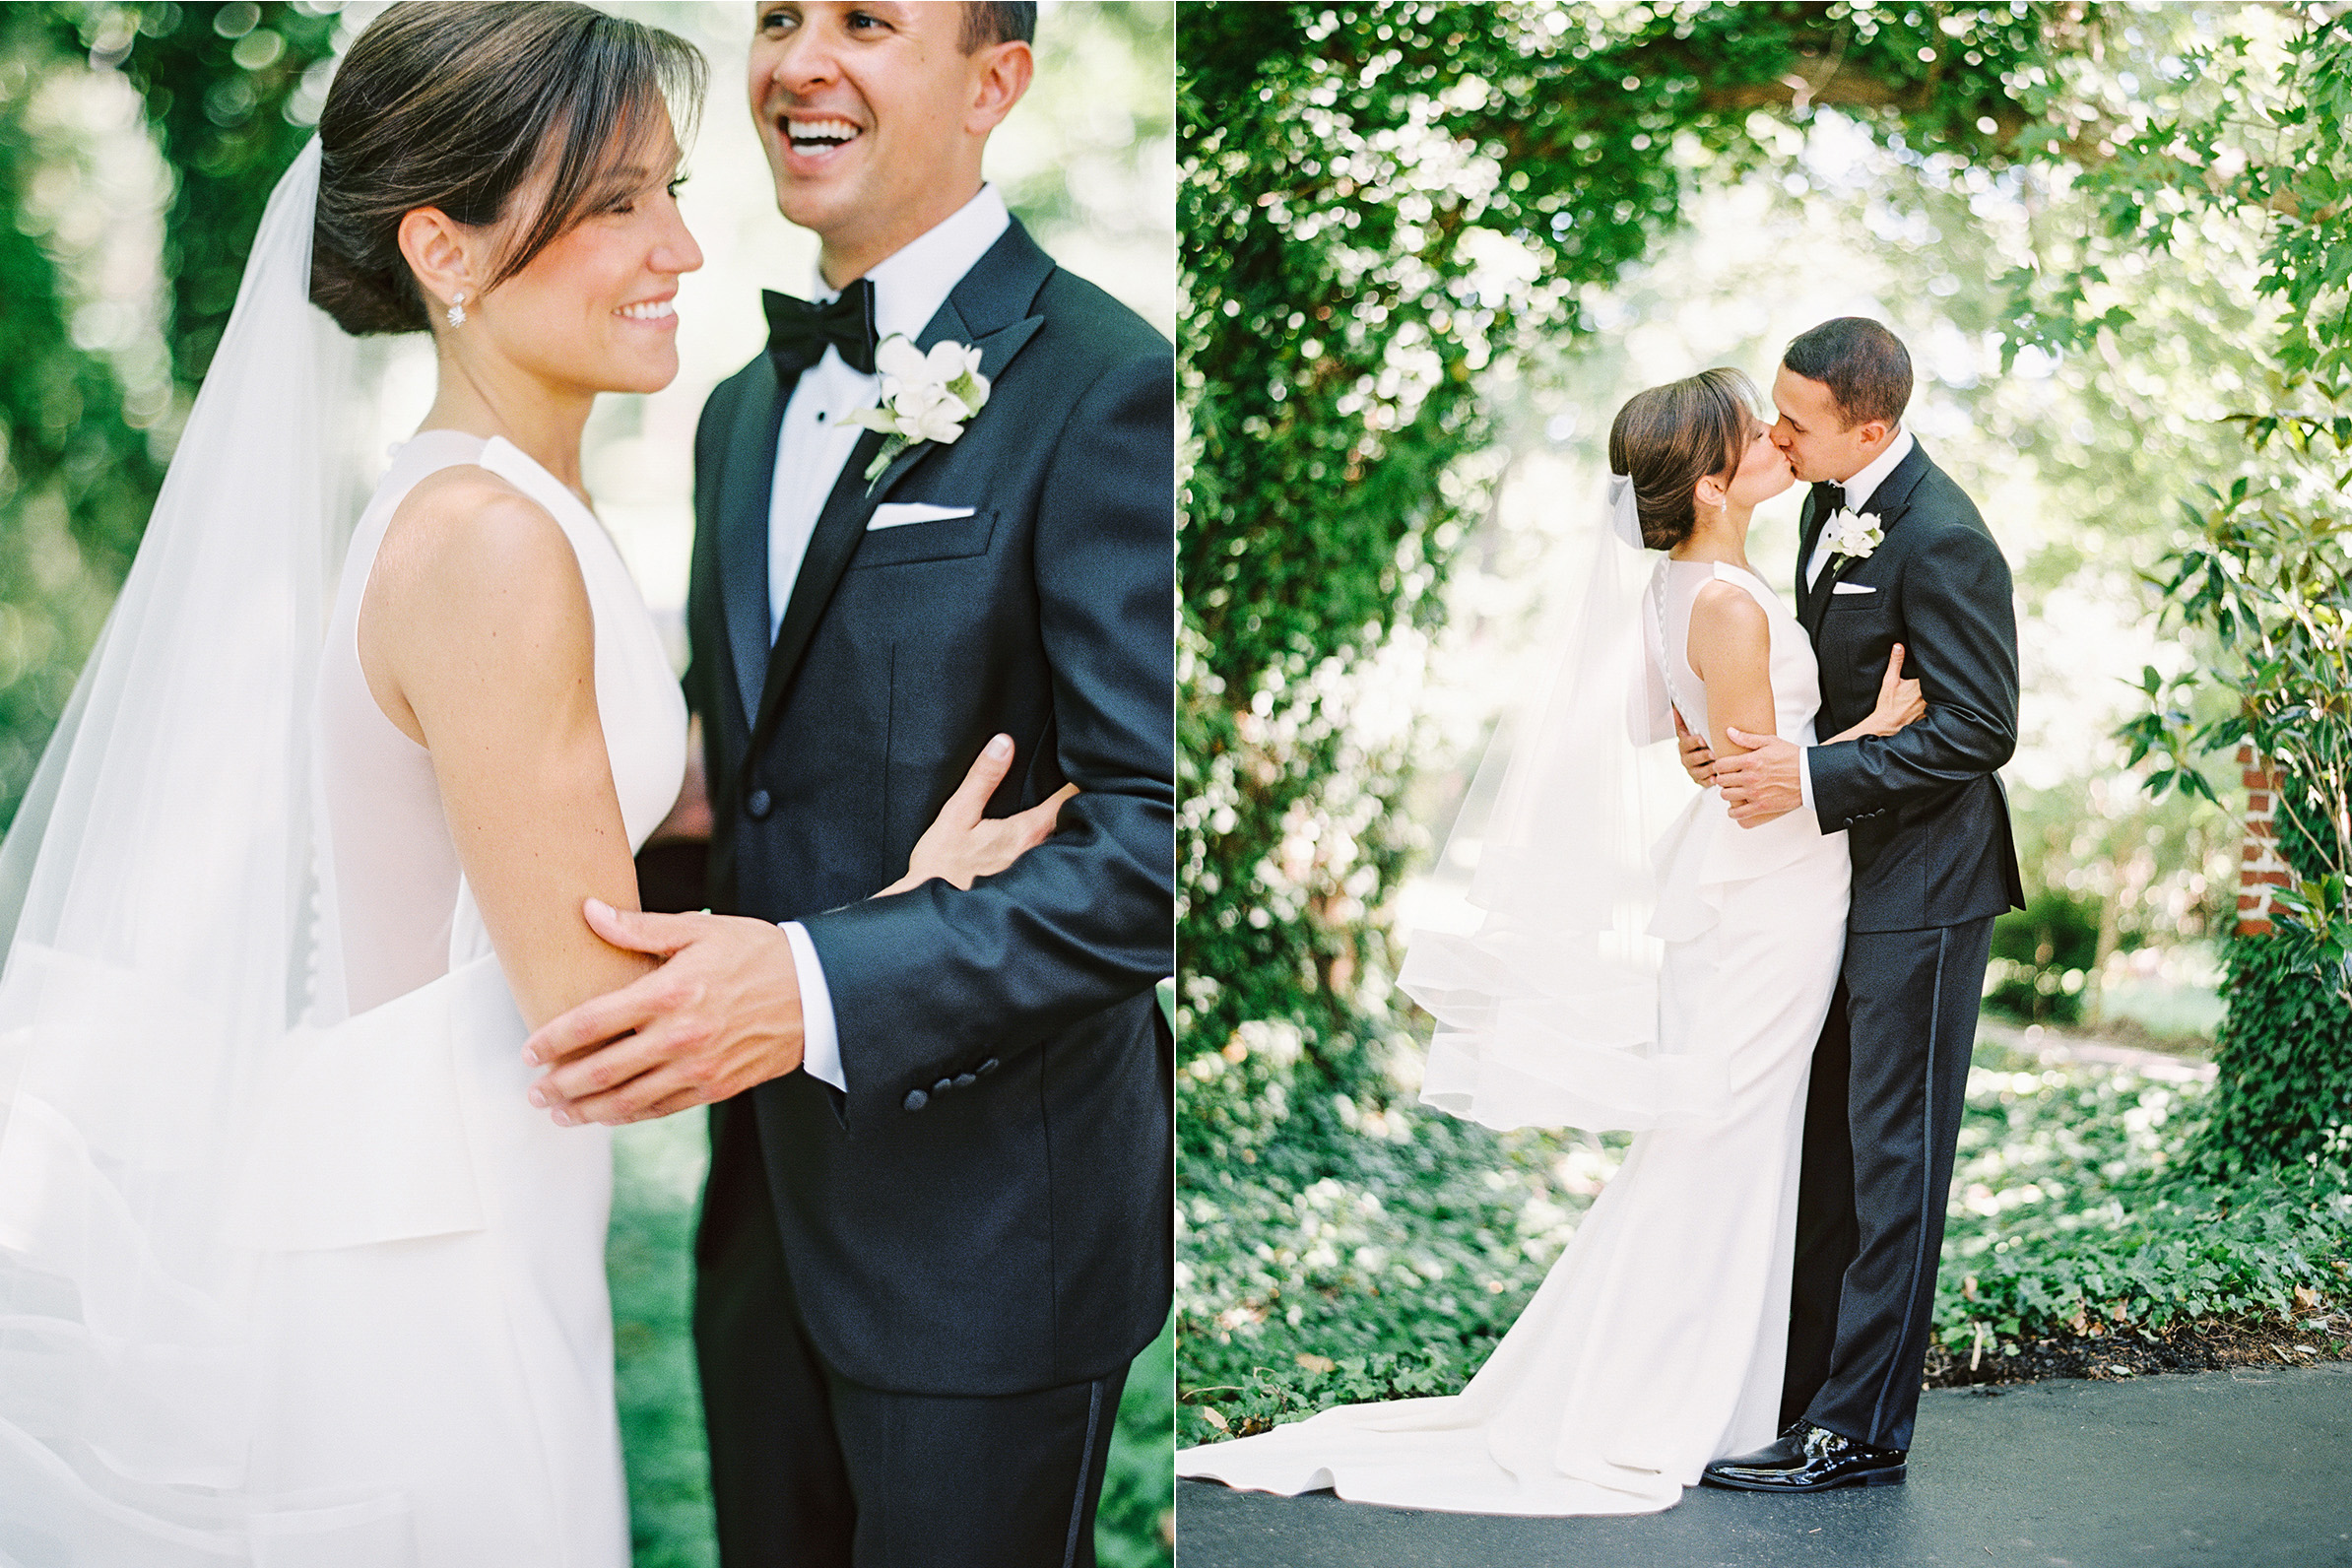 katie stoops photography-solomans island wedding20.jpg